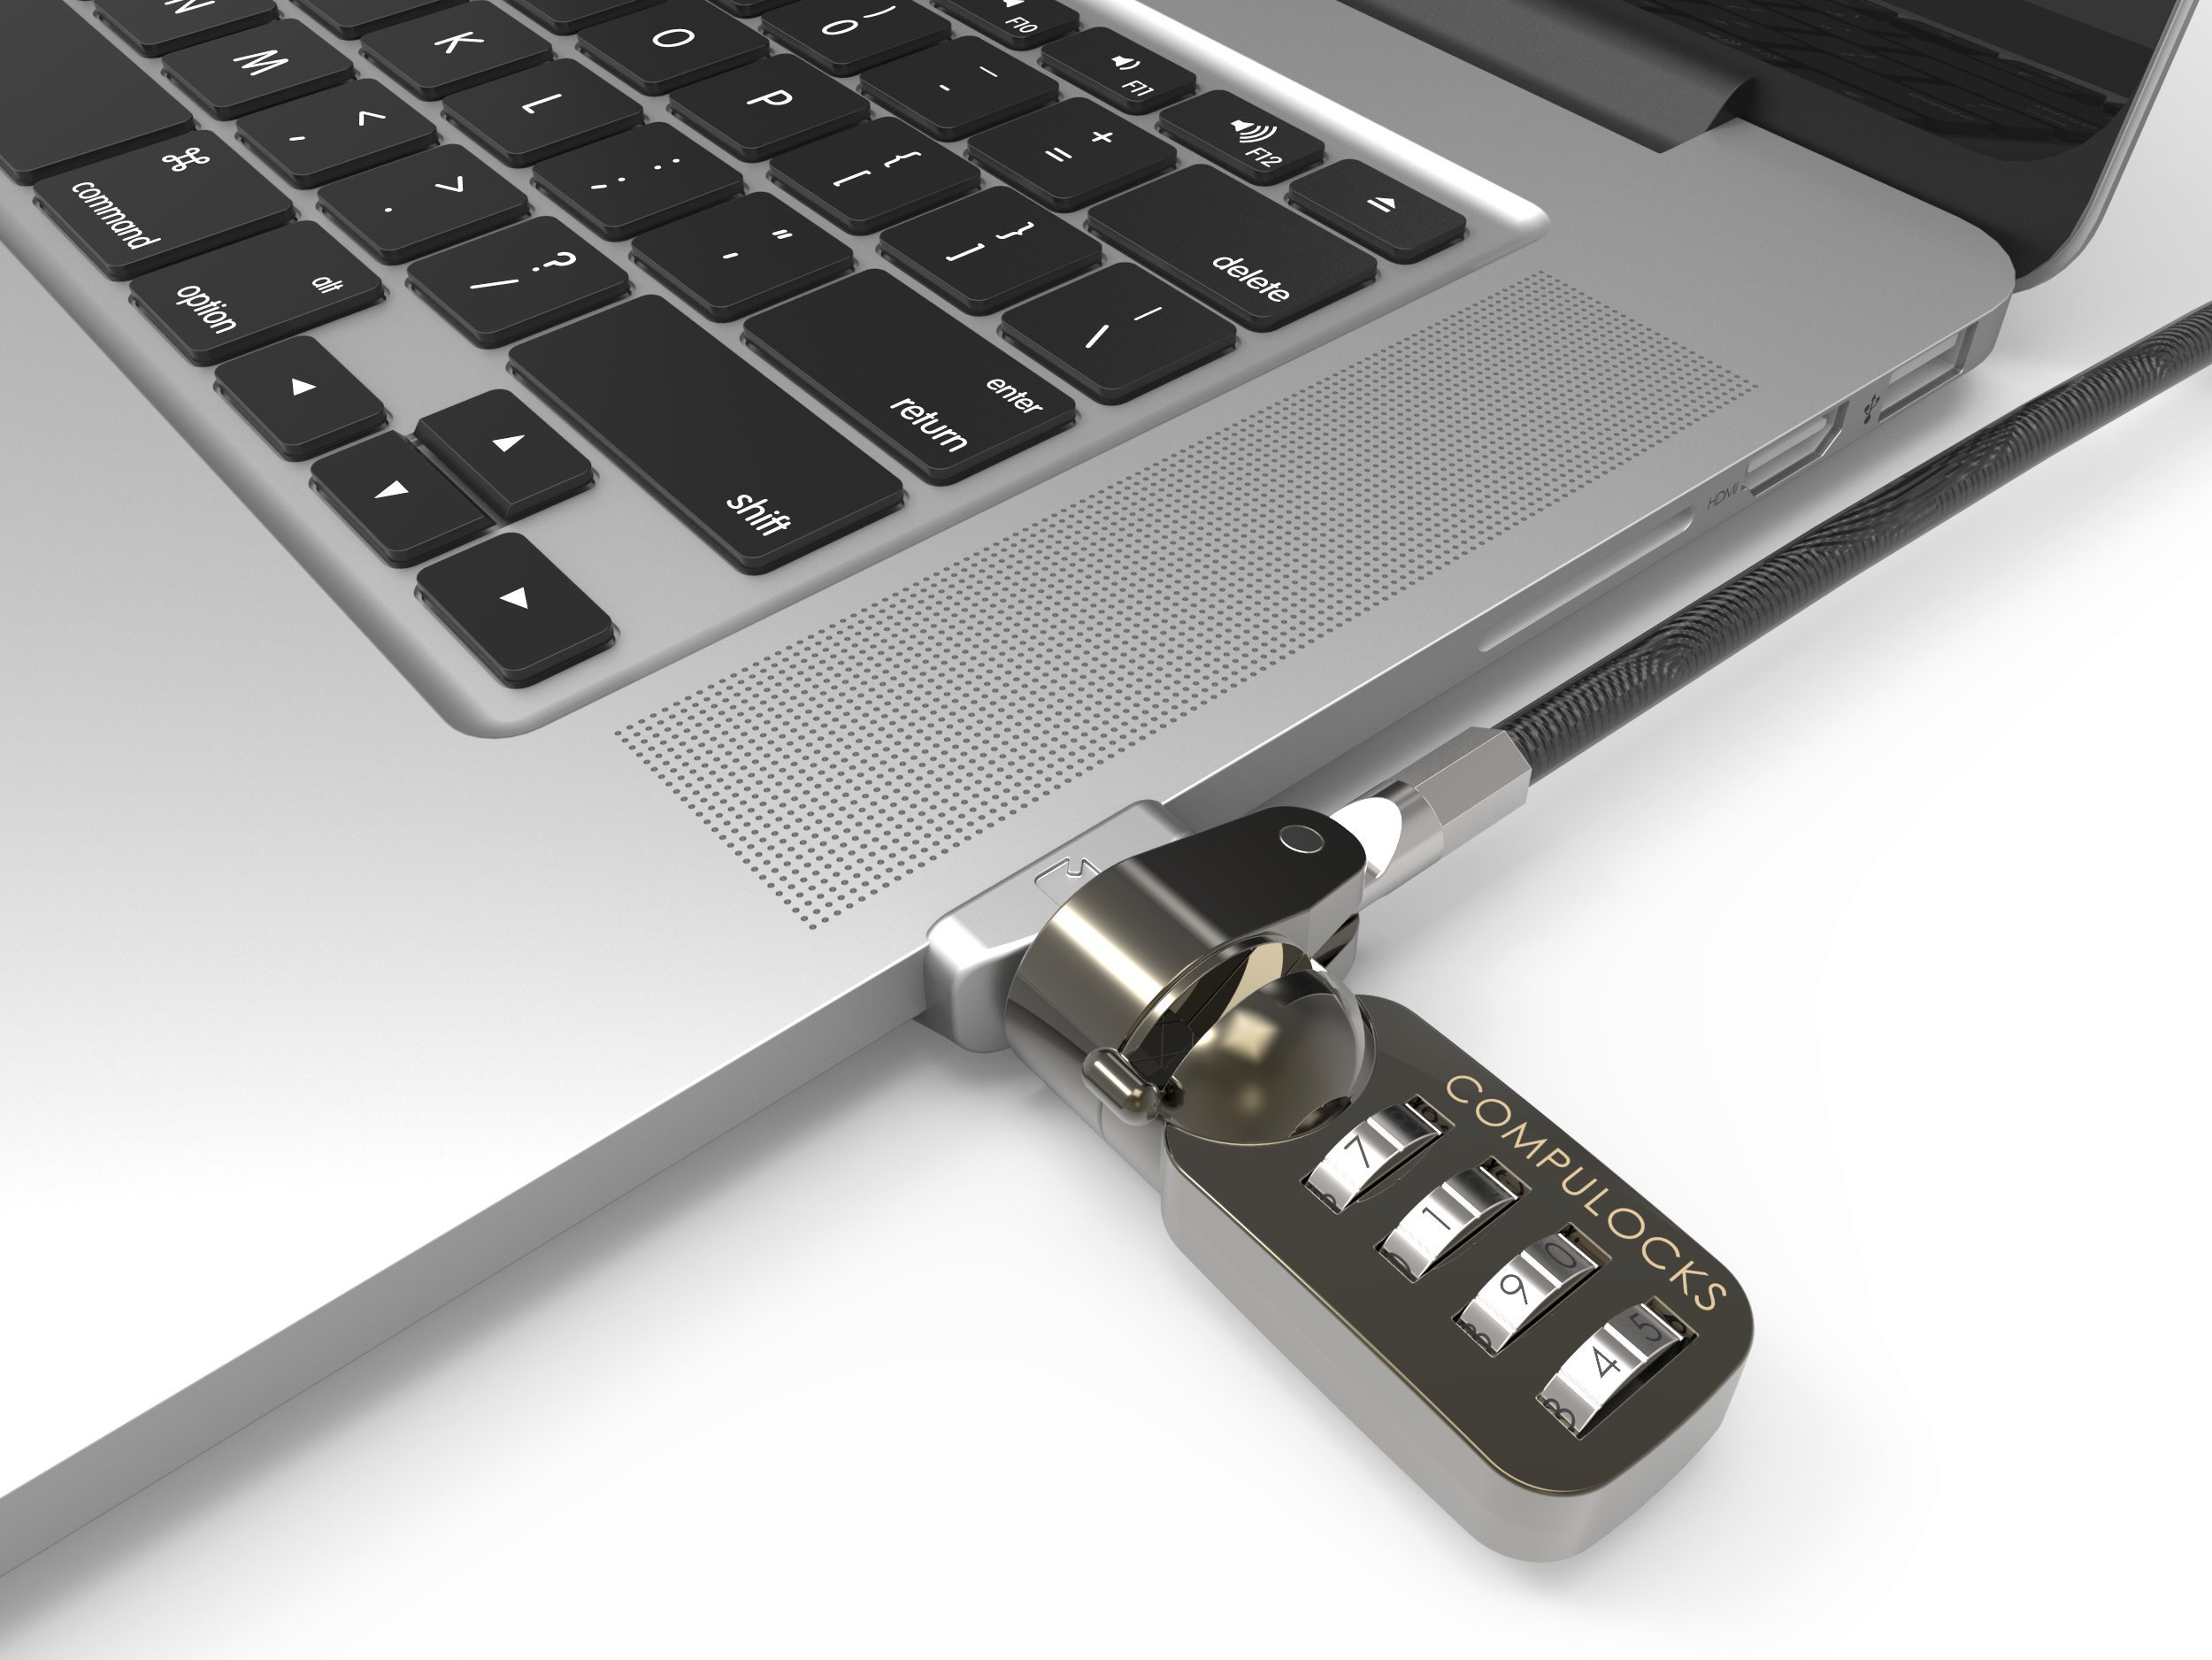 Maclocks MBALDGZ01CL Ledge Security Laptop Lock Slot Adapter with Combimation Lock for MacBook Air (Silver)